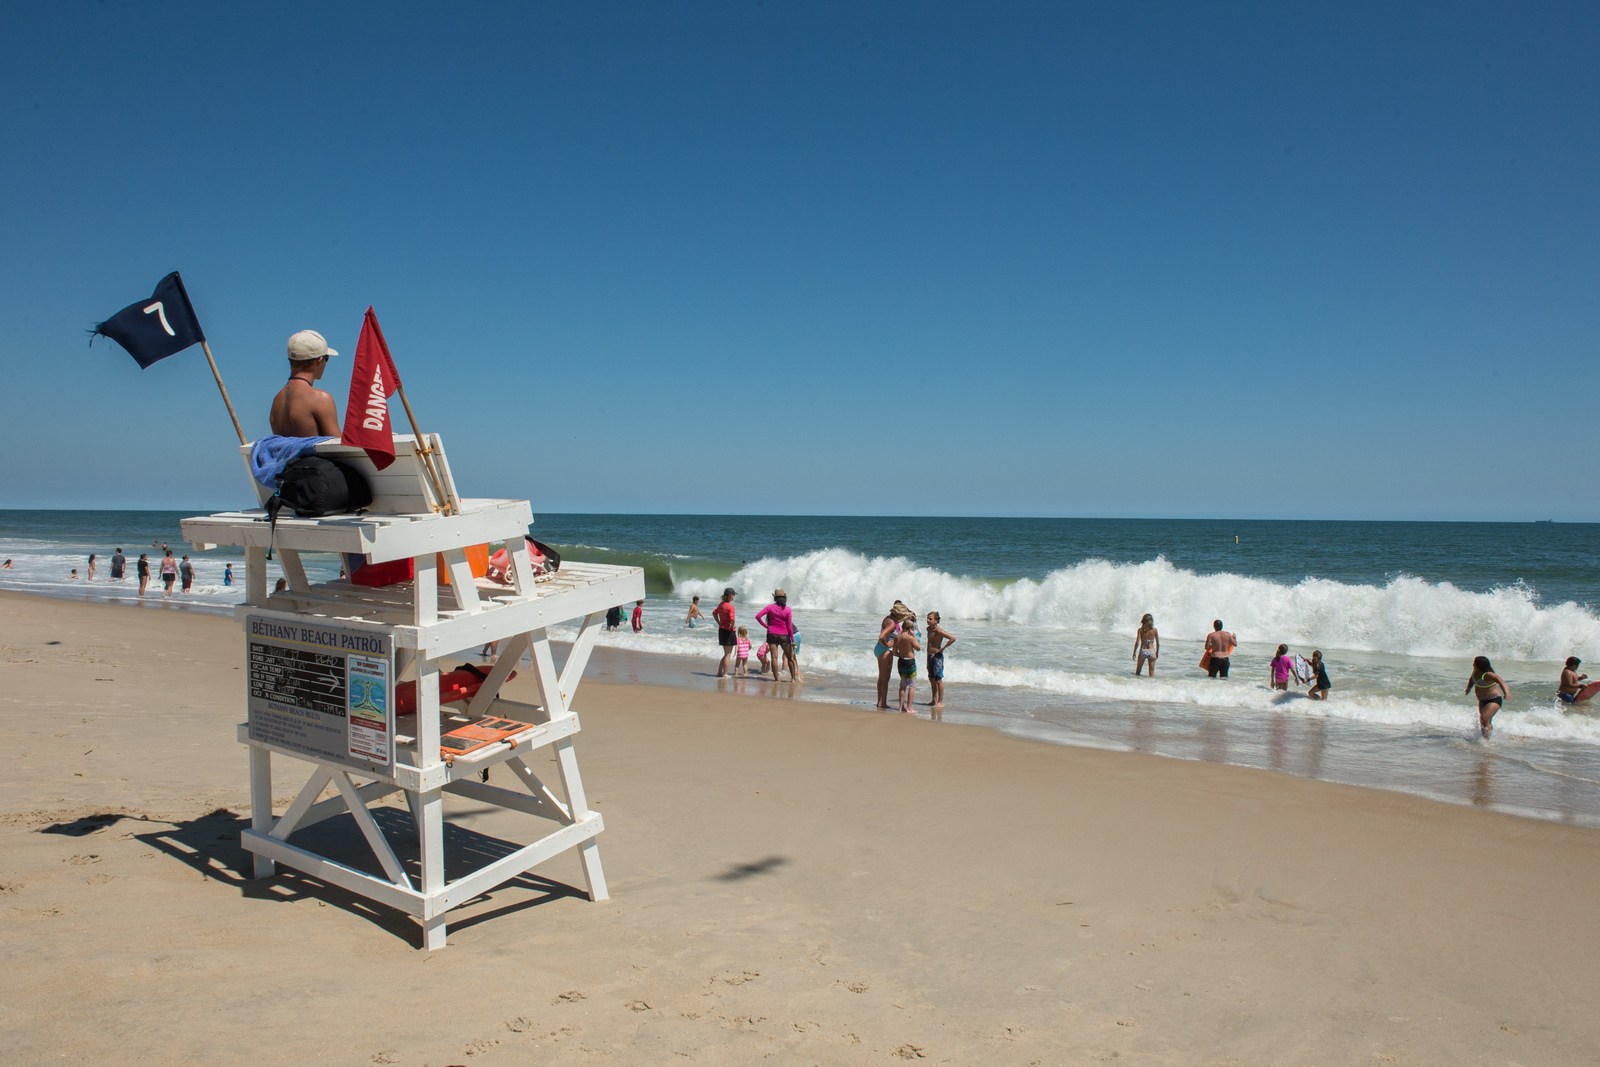 Bethany Beach is just 4 miles away from Bay Forest so the whole family can enjoy fun on the boards or the beach